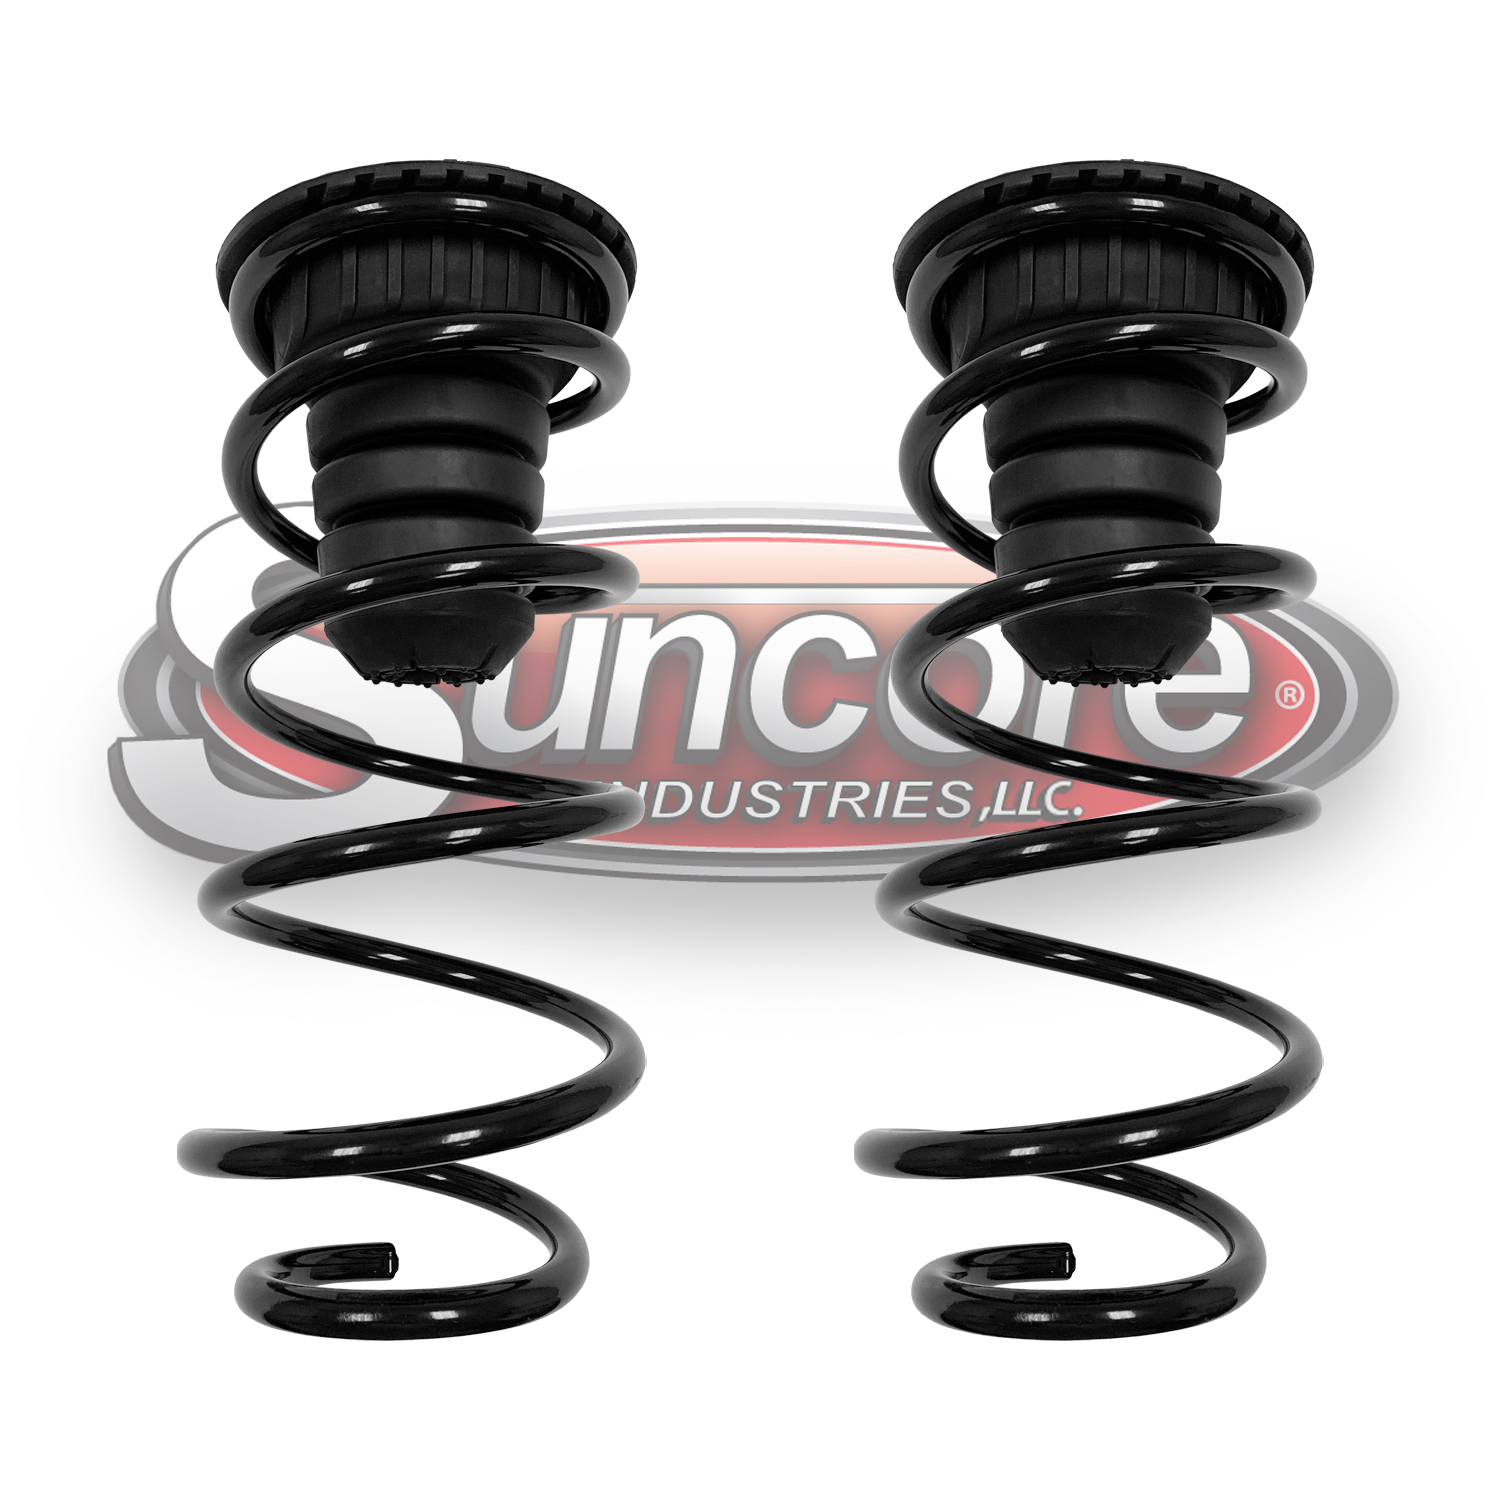 Rear Air Ride to Coil Springs Suspension Conversion Kit for 2005-2007 Toyota Sequoia